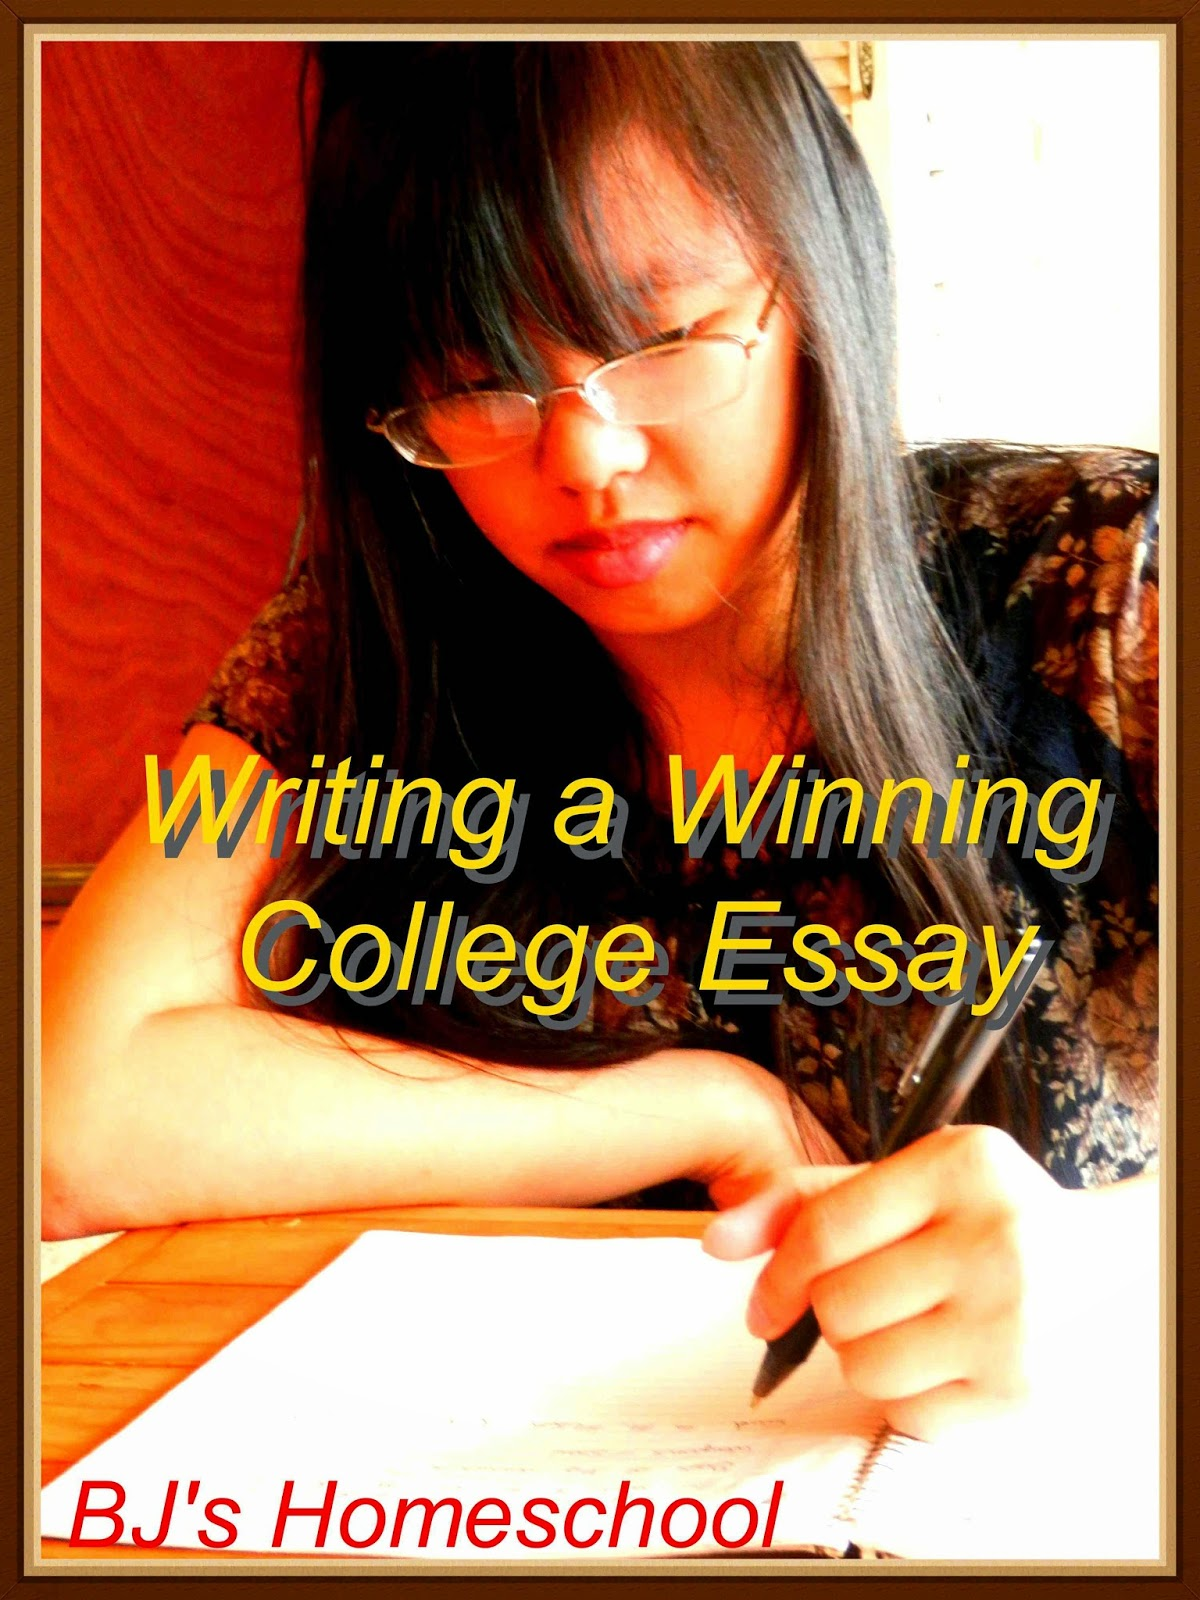 journey to school essay I am posting my personal statement, hoping that pre-pas can use it as a template or for inspiration to craft their own essays.